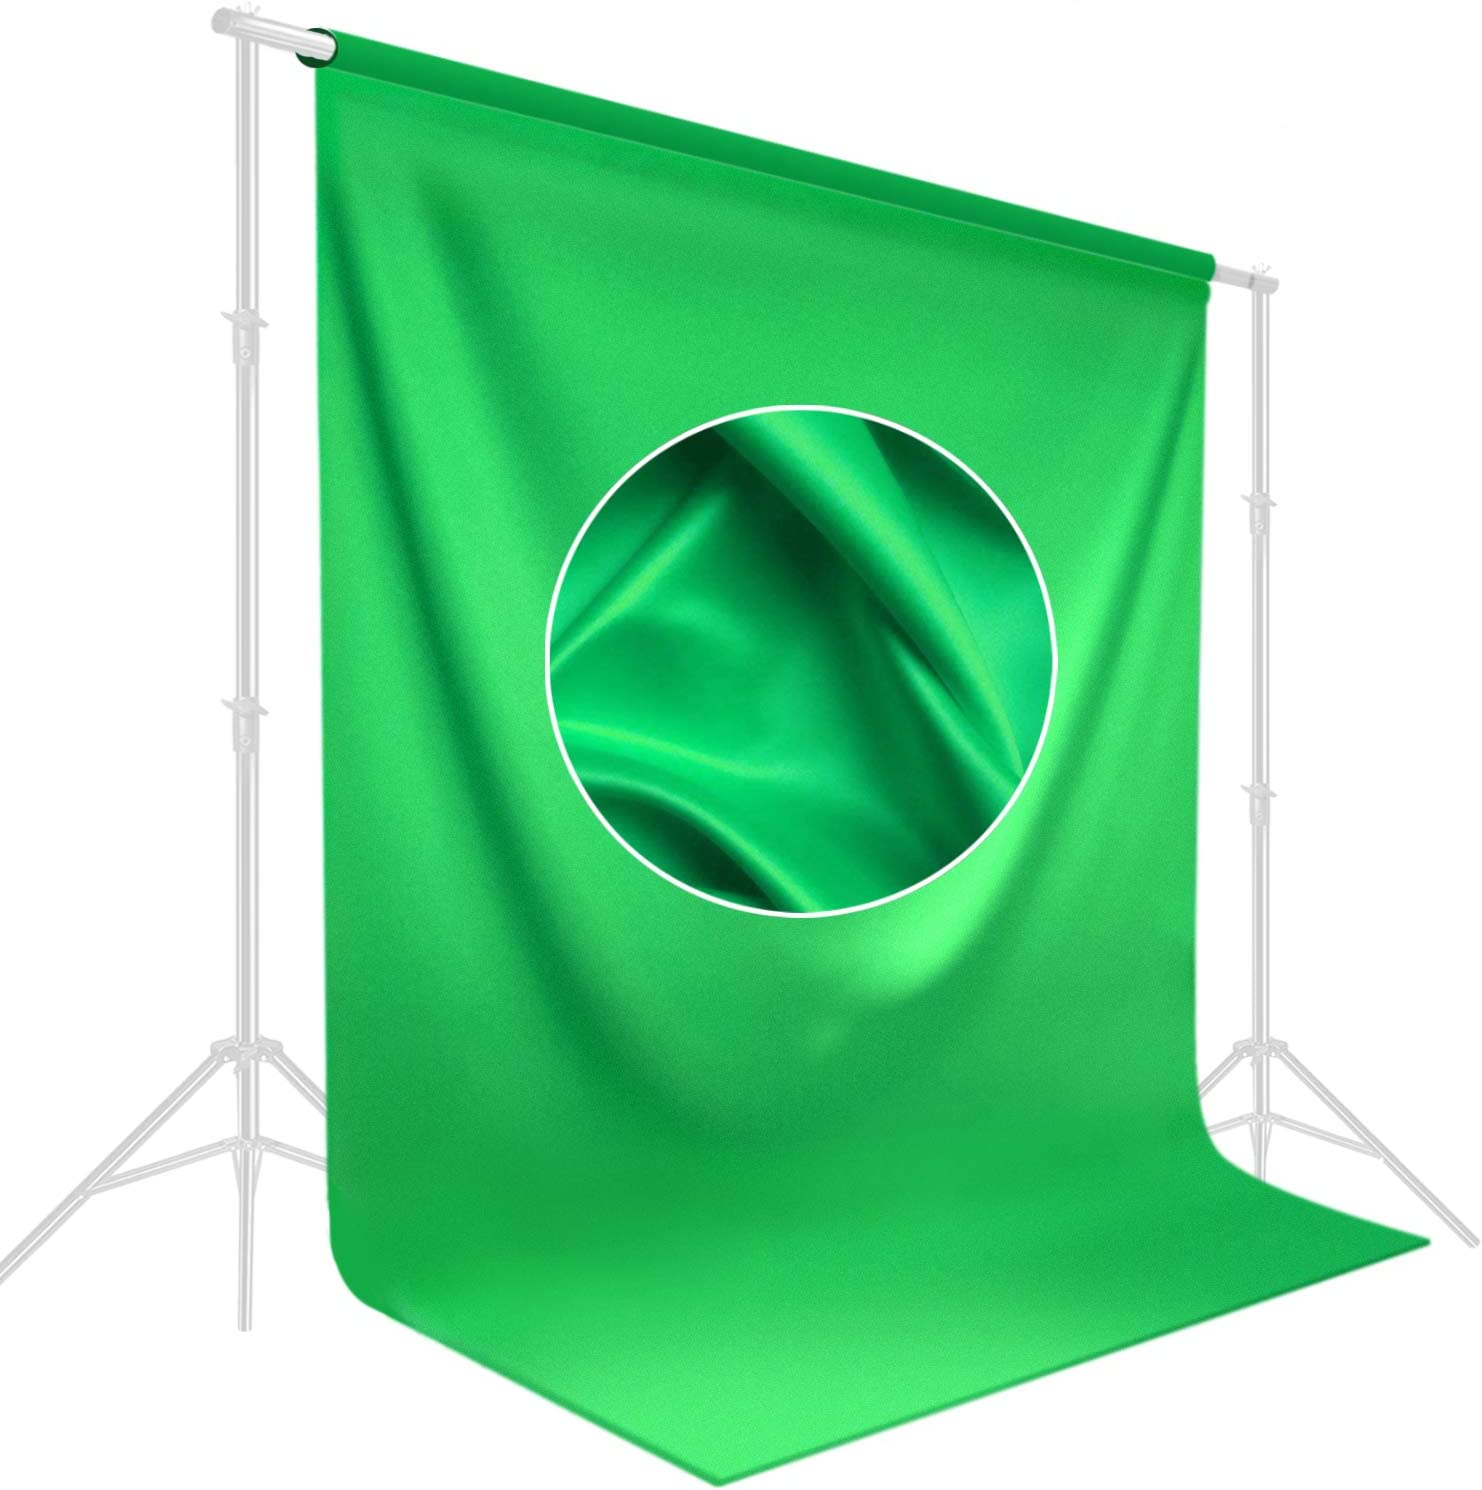 LimoStudio, AGG1846, Soft Backdrop Muslin, Background Screen for Chroma Key Photo Video Shooting, Streaming, Photography Studio (Green, 9 x 13 ft.)